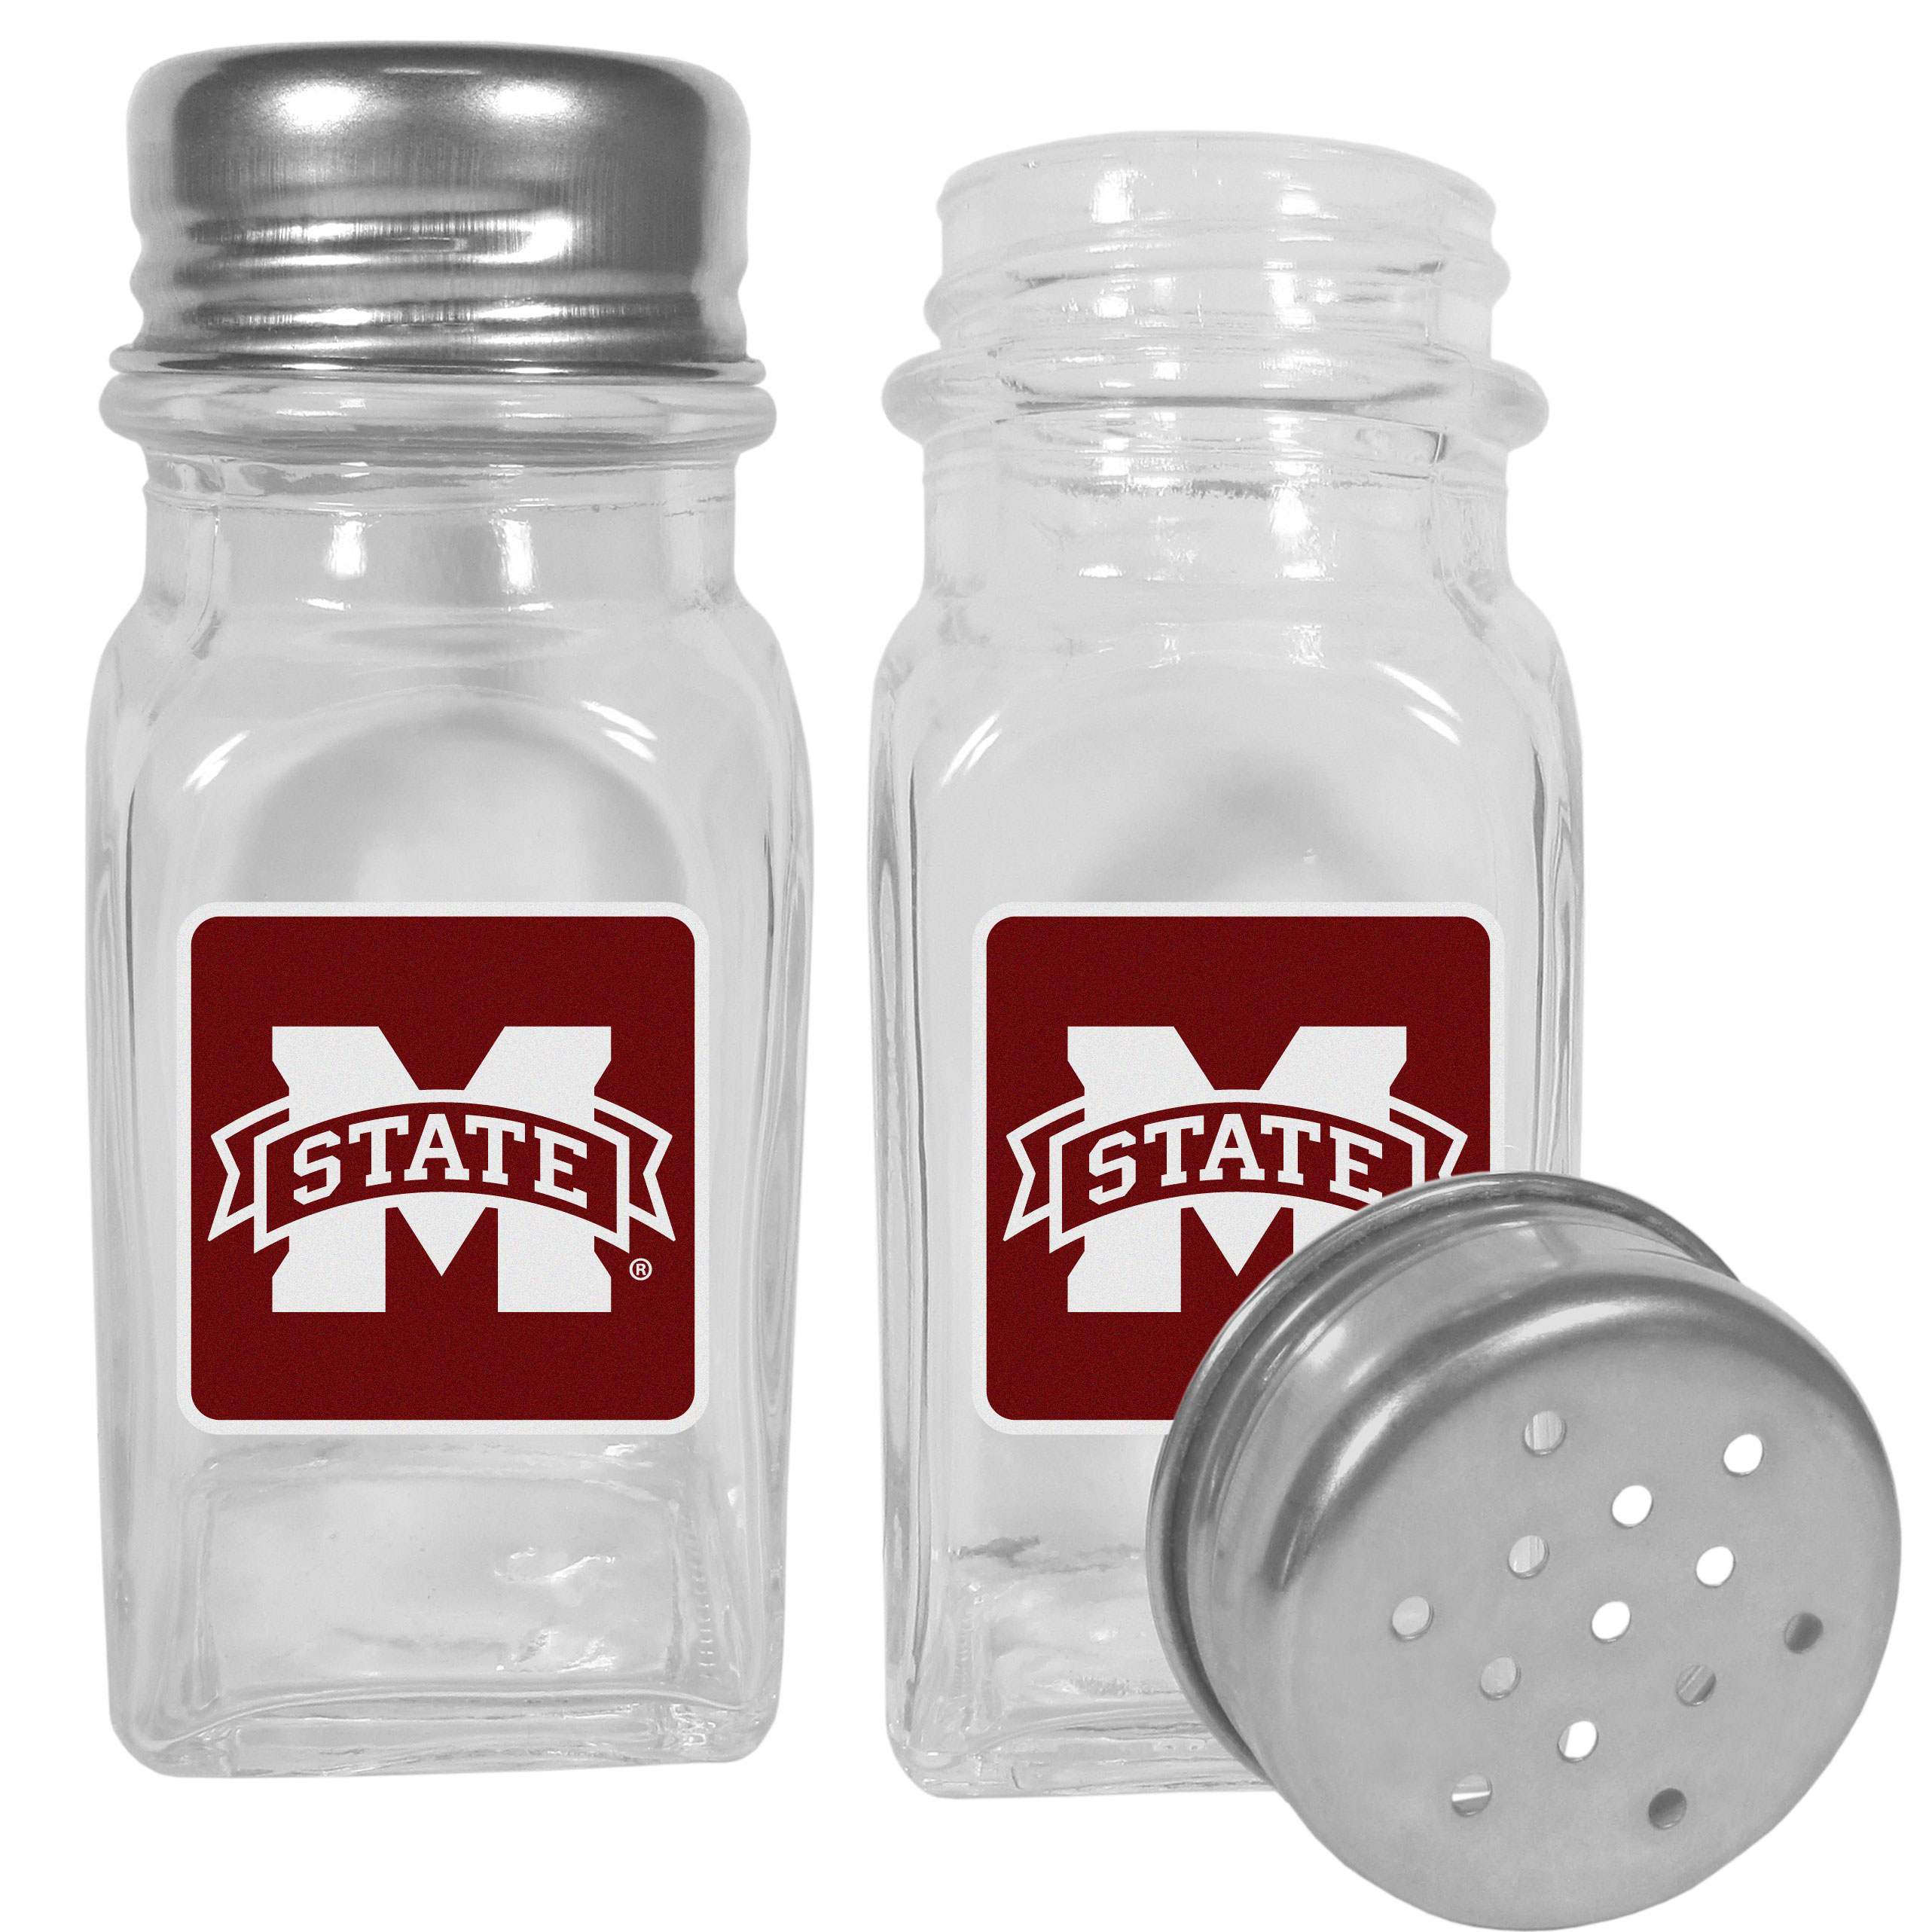 Mississippi St. Bulldogs Graphics Salt and Pepper Shaker - No tailgate party is complete without your Mississippi St. Bulldogs salt & pepper shakers featuring bright team logos. The diner replica salt and pepper shakers are glass with screw top lids. These team shakers are a great grill accessory whether you are barbecuing on the patio, picnicing or having a game day party.